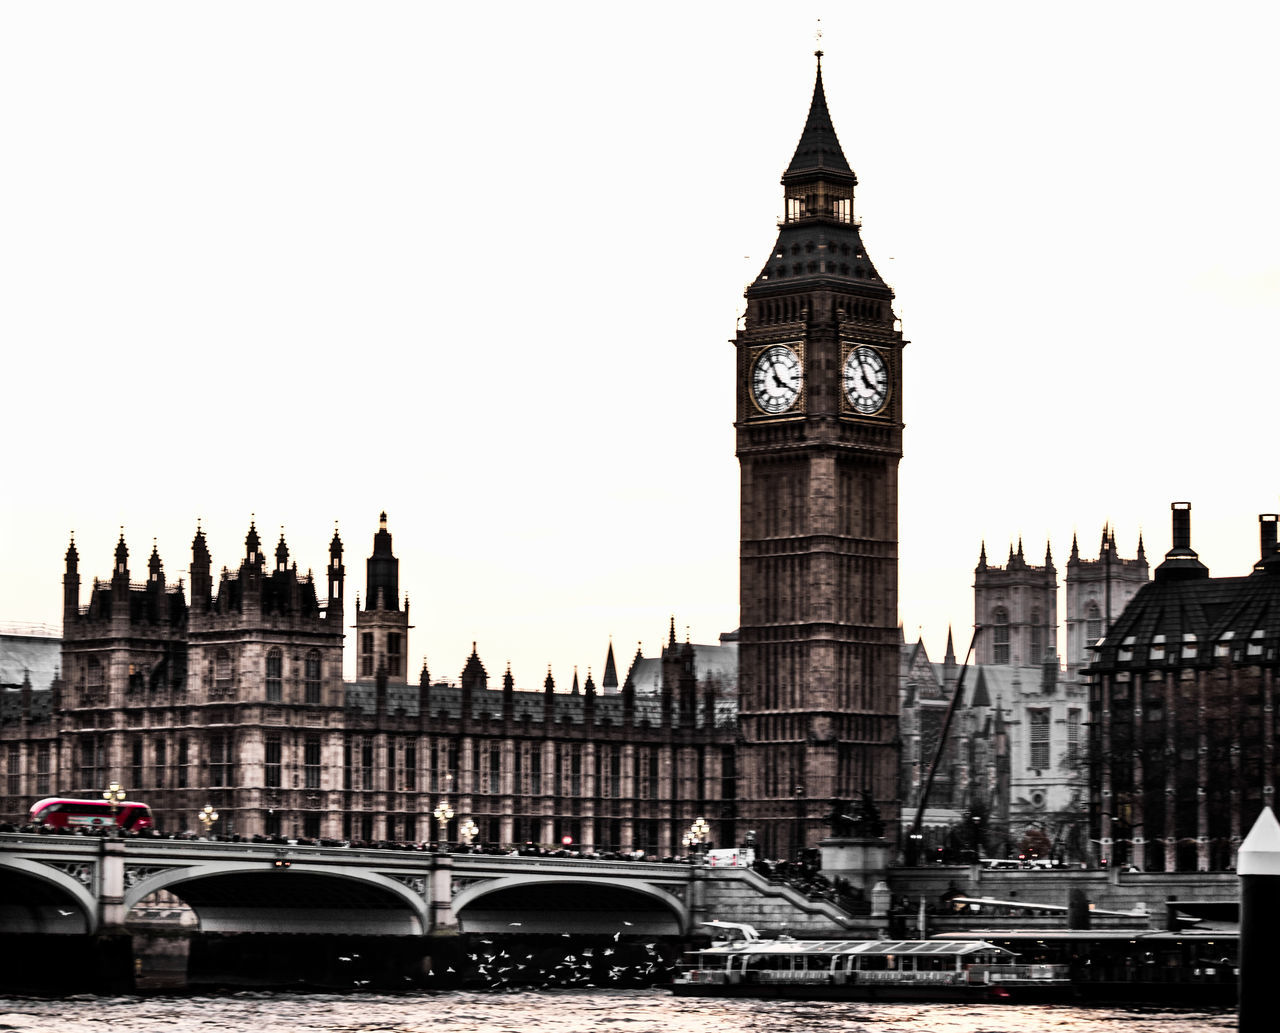 clock tower, architecture, travel destinations, tower, building exterior, bridge - man made structure, built structure, gothic style, transportation, river, travel, tourism, city, government, day, clock, outdoors, double-decker bus, water, no people, time, sky, cityscape, clock face, politics and government